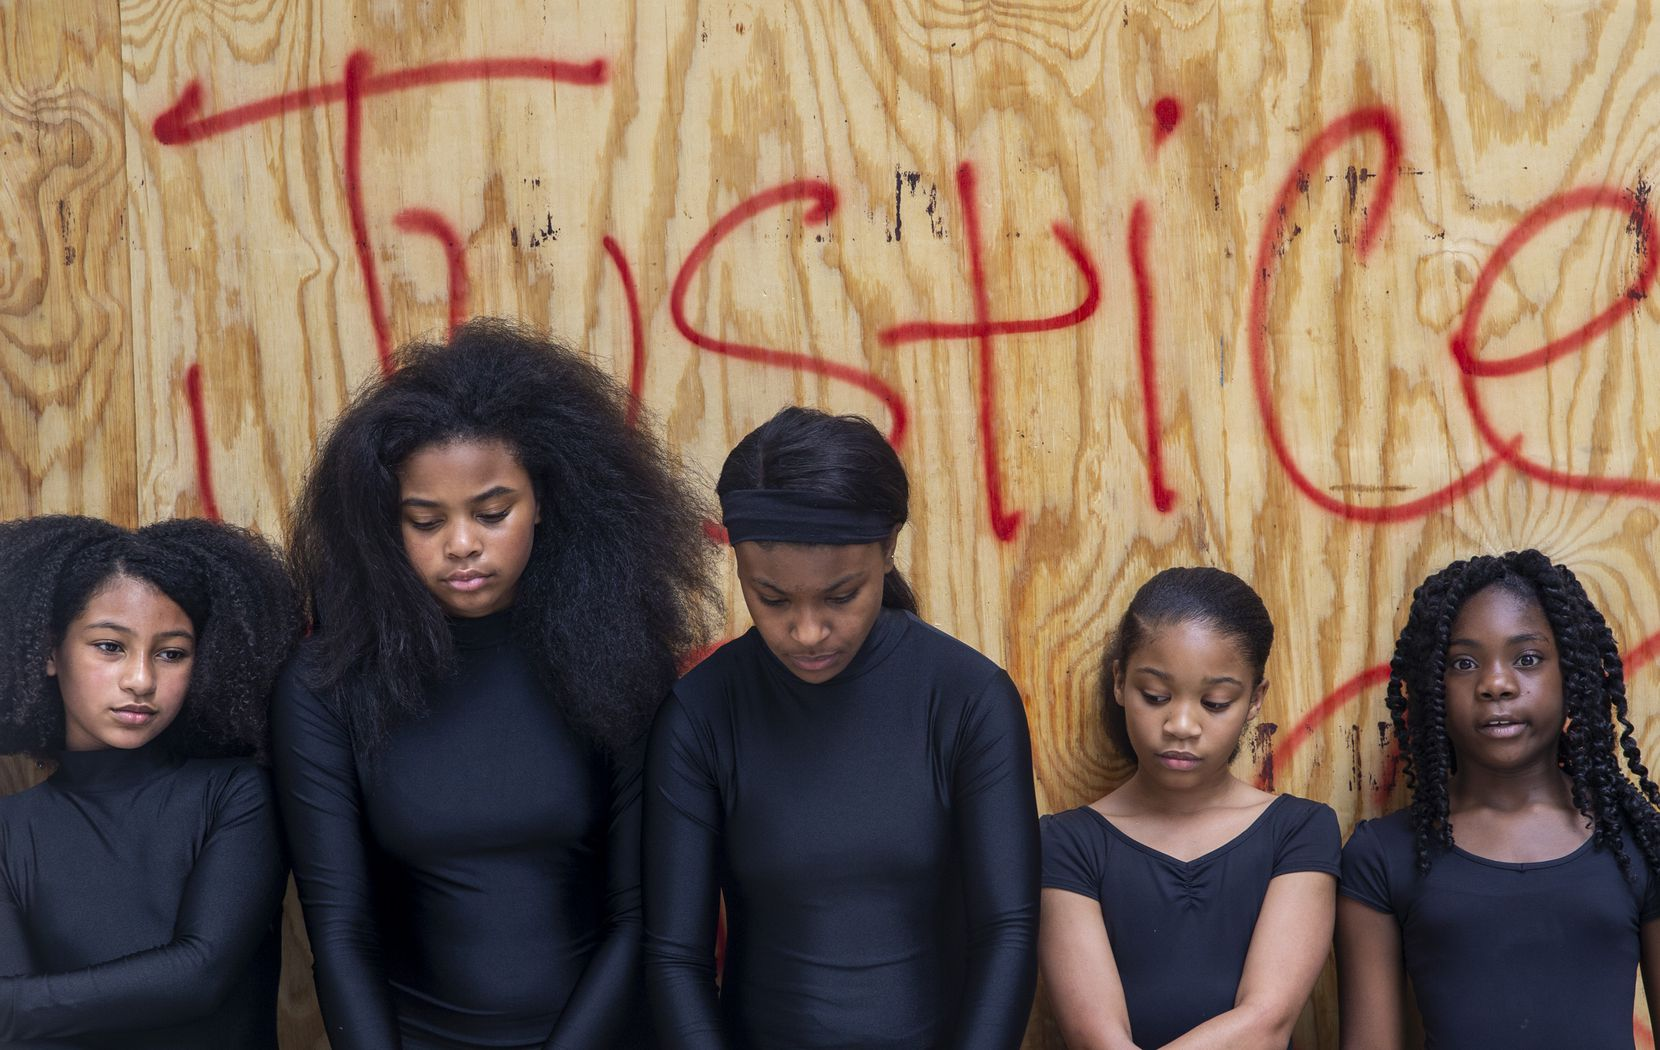 """Lexi Anderson (from left), 10; Reign Villegas, 13; Michaia Thomas, 12; Kennedy Williams, 11; and Jordin Willis, 10, dancers with Elev8ed Elites Dance and Cheer Company, stand in front of the words """"No Justice, No Peace"""" on a boarded-up building on Commerce Street downtown. Their director, Shantrail White, took them to survey graffiti June 1 after a weekend of protests."""